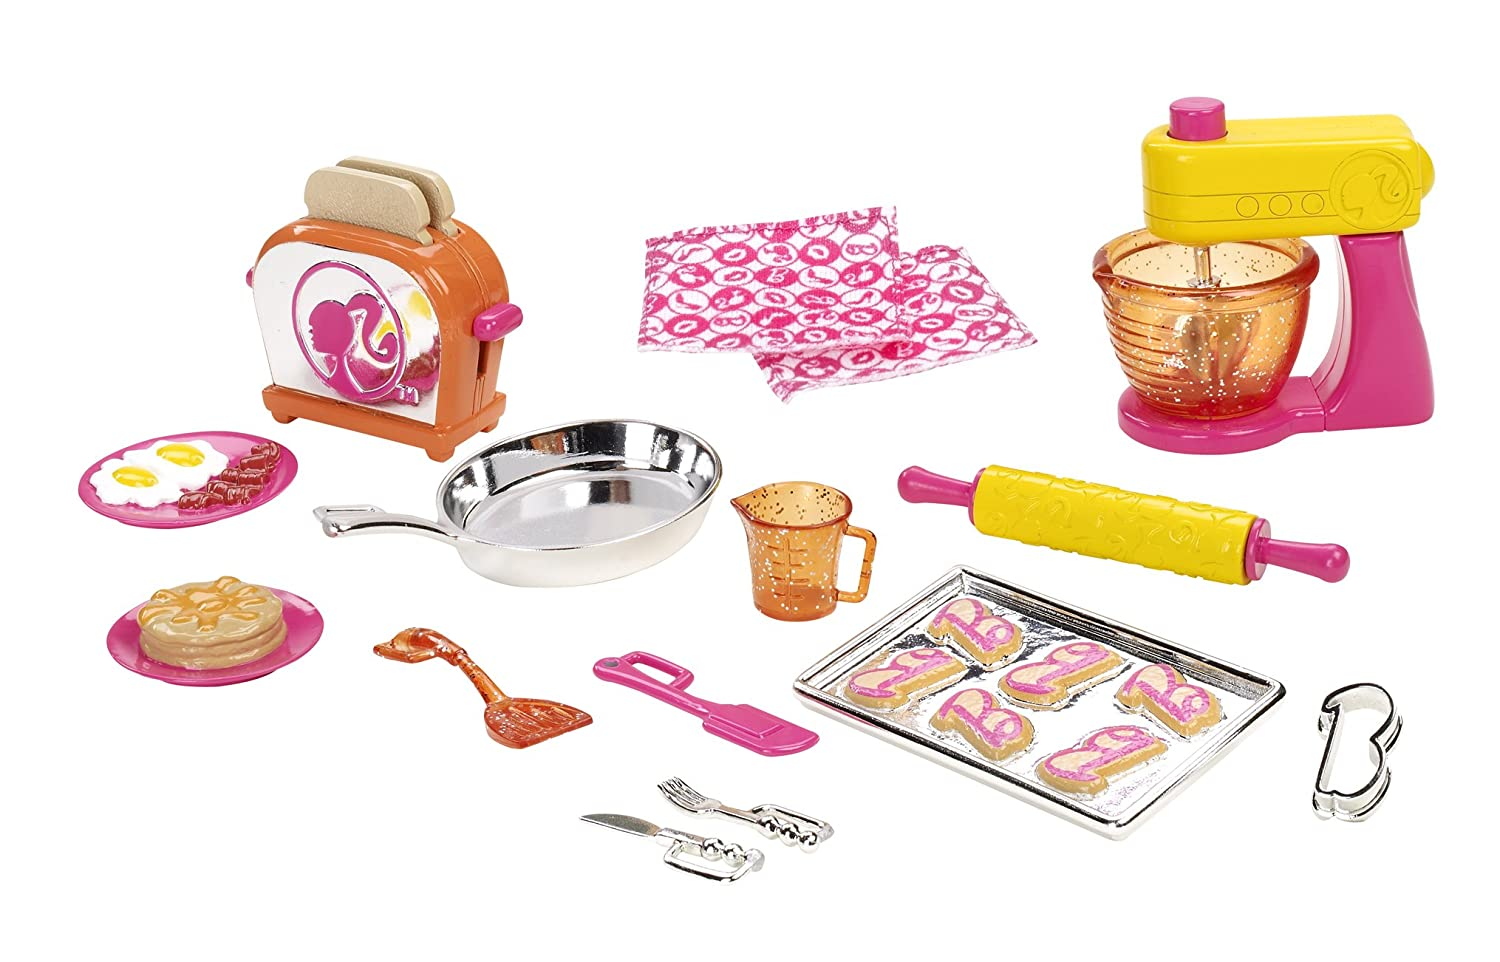 Amazon.com: Barbie Doll and Kitchen Accessory Set: Toys & Games